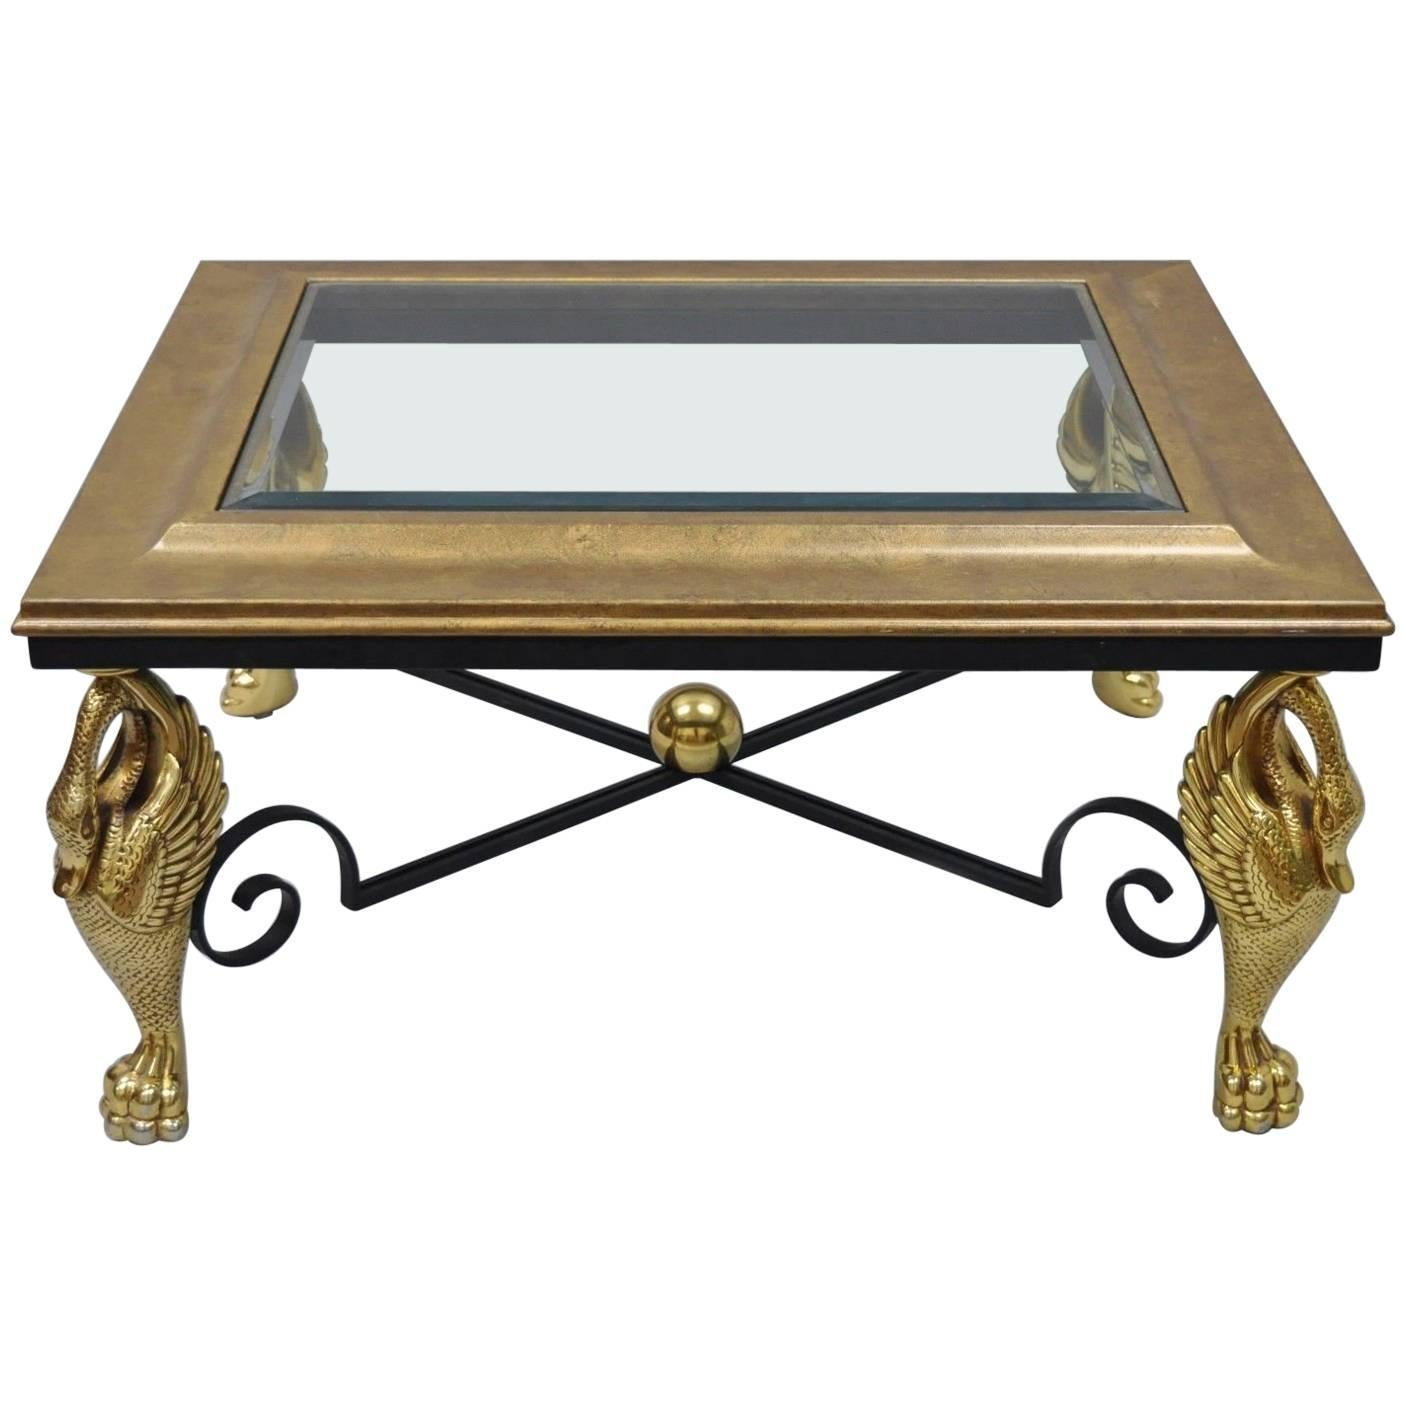 Regency Style Swan Base Rectangular Coffee Table Gold Metal Iron And Glass  Top For Sale